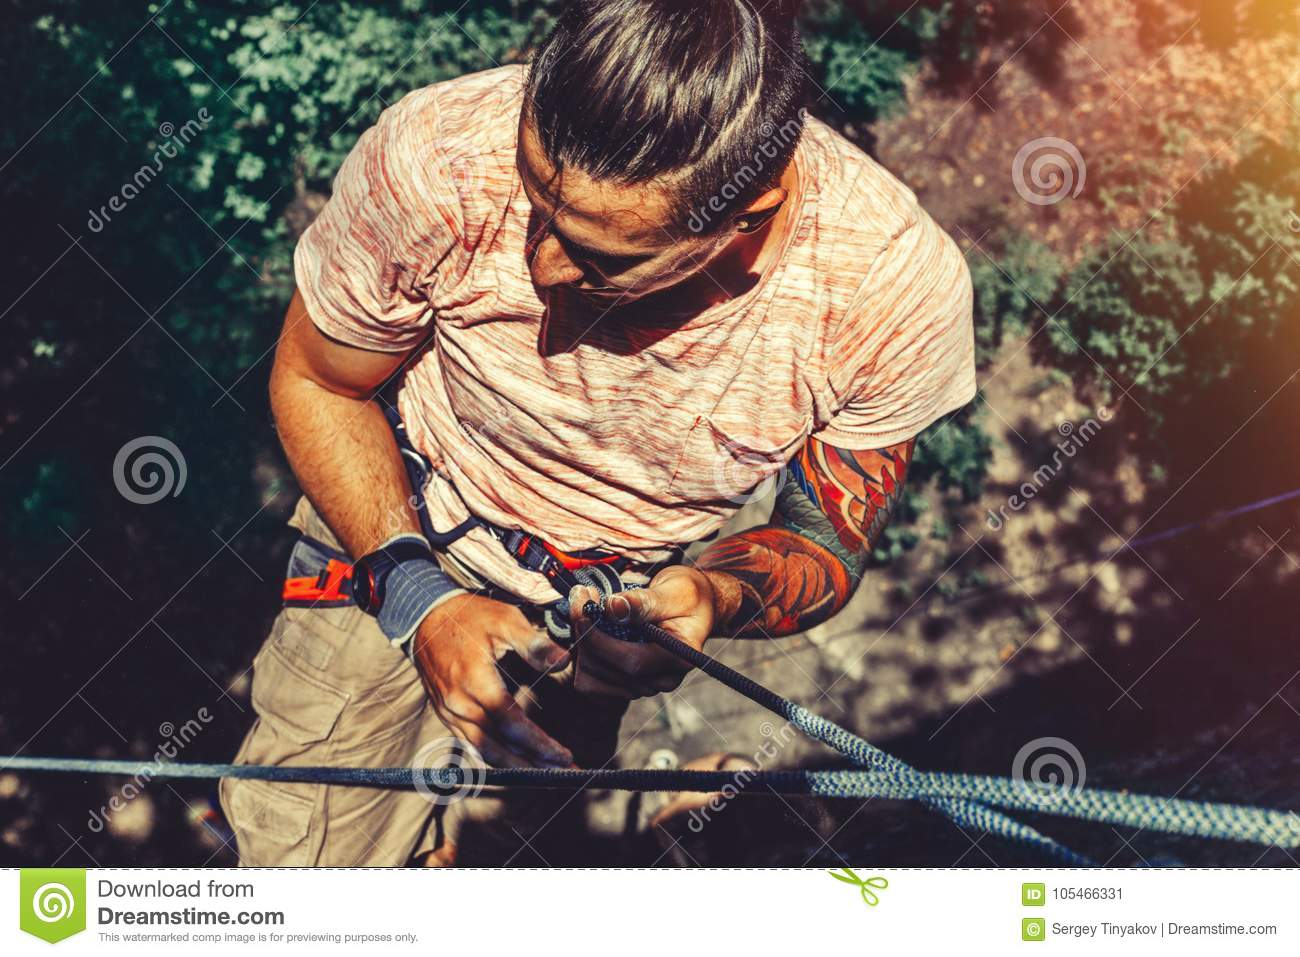 Climber Man Hanging On A Rock On A Rope And Looks Somewhere On The Wall. Extreme Lifestyle Outdoor Activity Concept